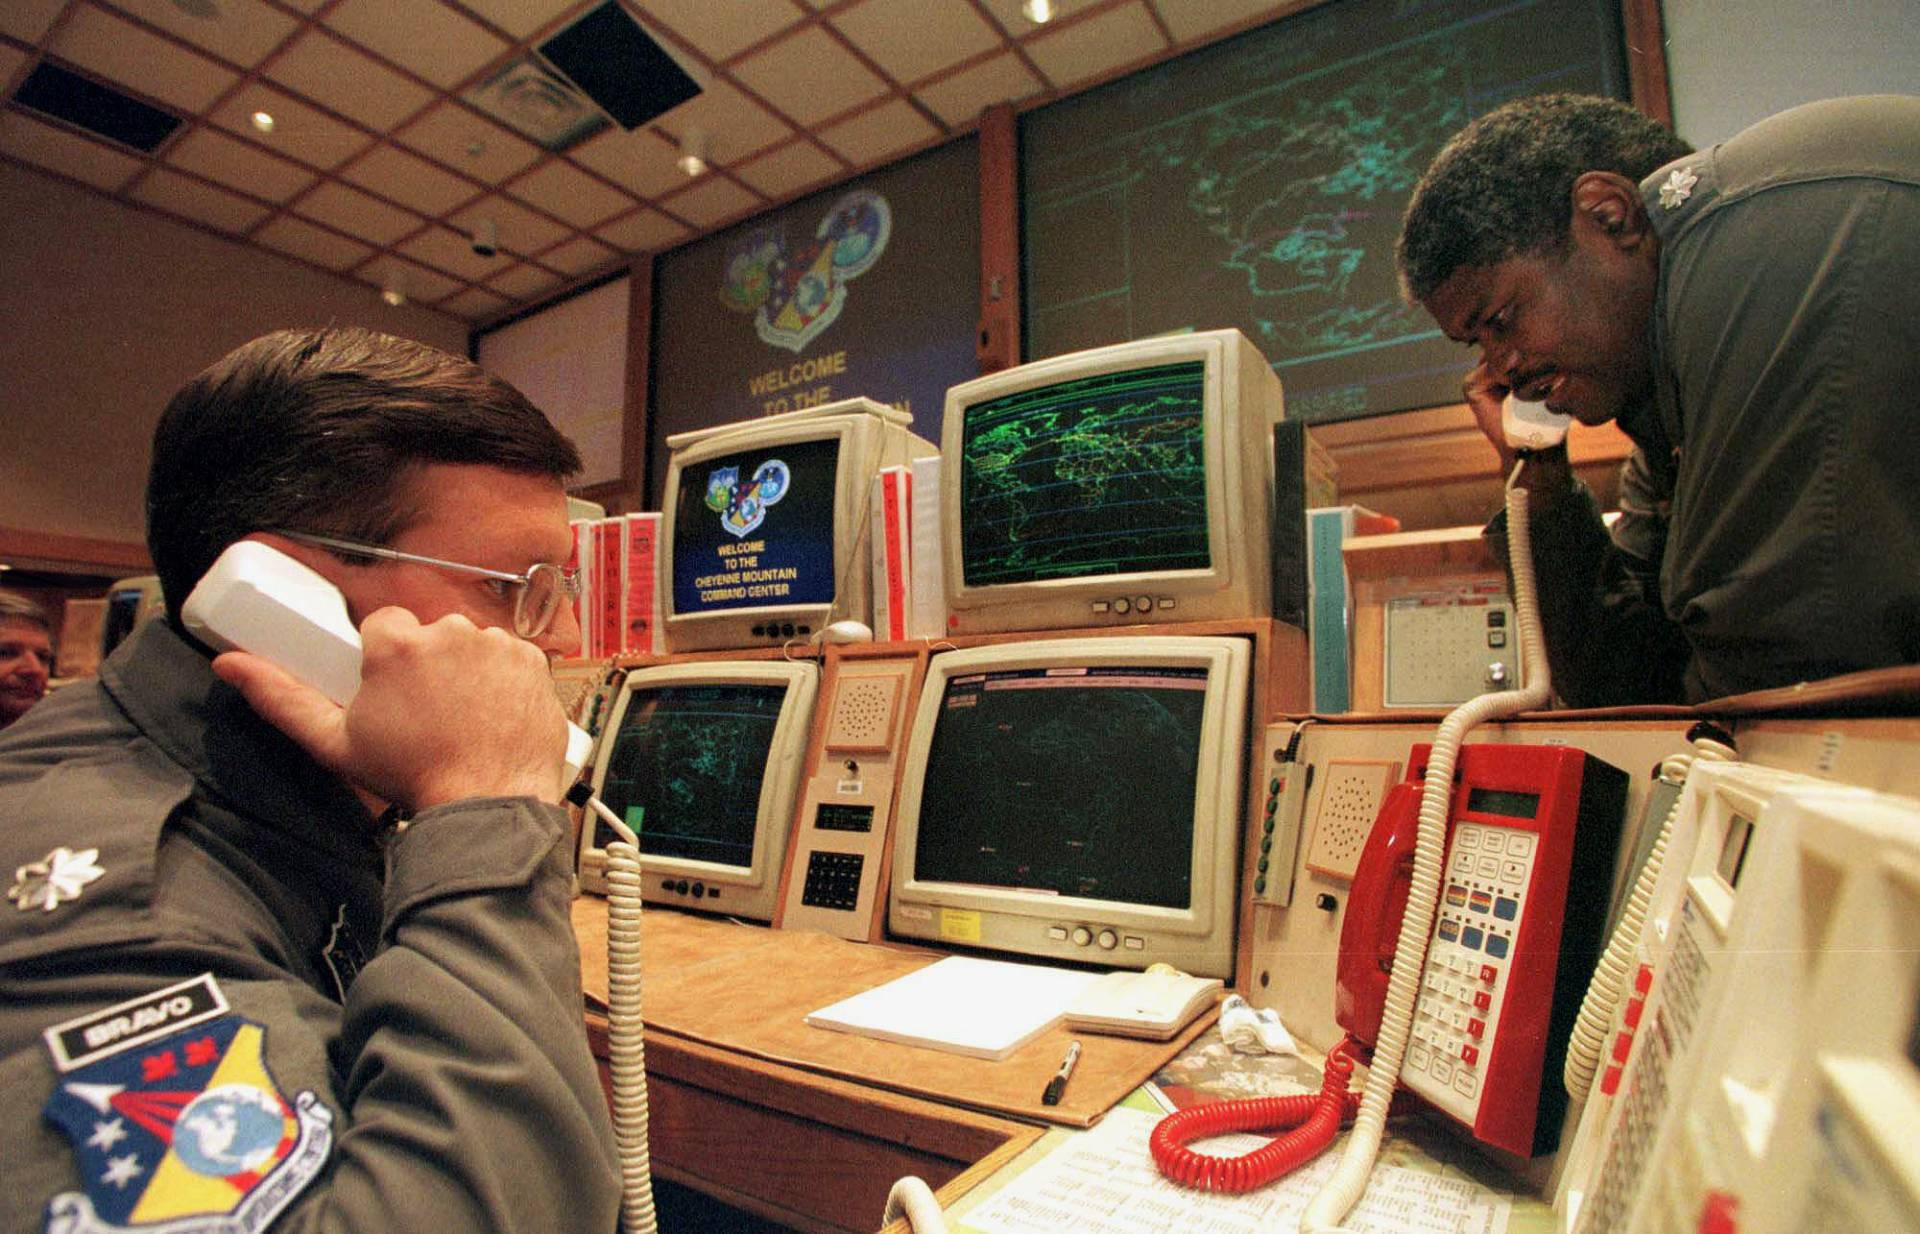 Missile Commanders confirm a launch warning over the phone during a practice drill at the North America Aerospace Defense Command, Nov. 9, 1999.  At the time, there were worries over whether the Y2K bug would render the complex missile tracking system inoperational after computers switched to the new year.  MARK LEFFINGWELL/AFP via Getty Images